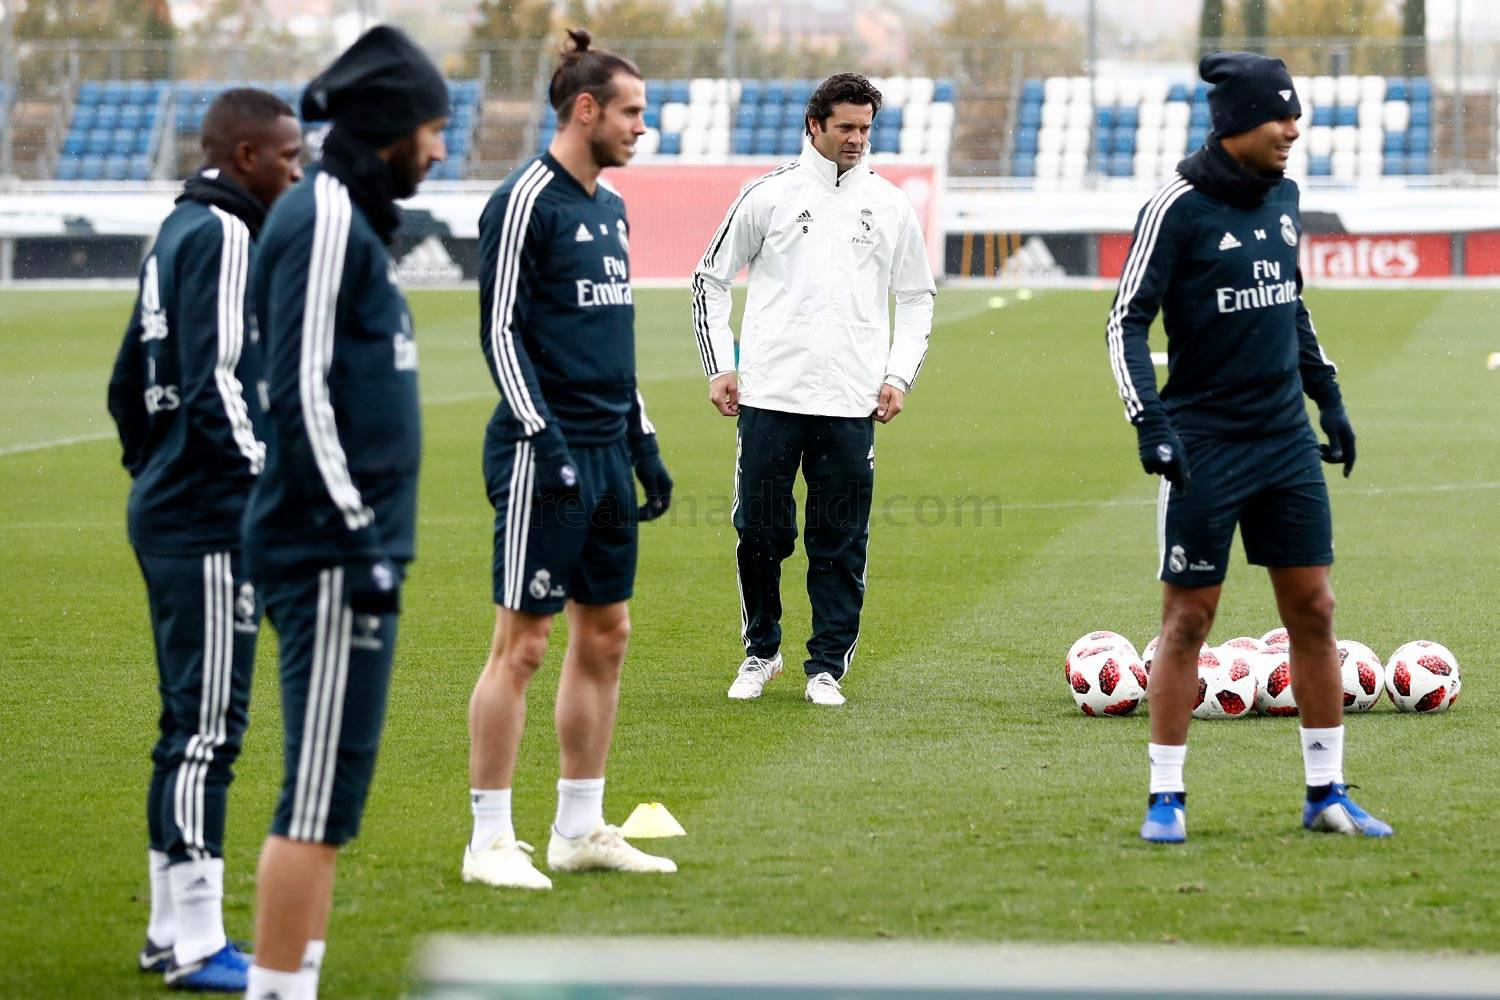 Real Madrid - Entrenamiento del Real Madrid - 30-10-2018